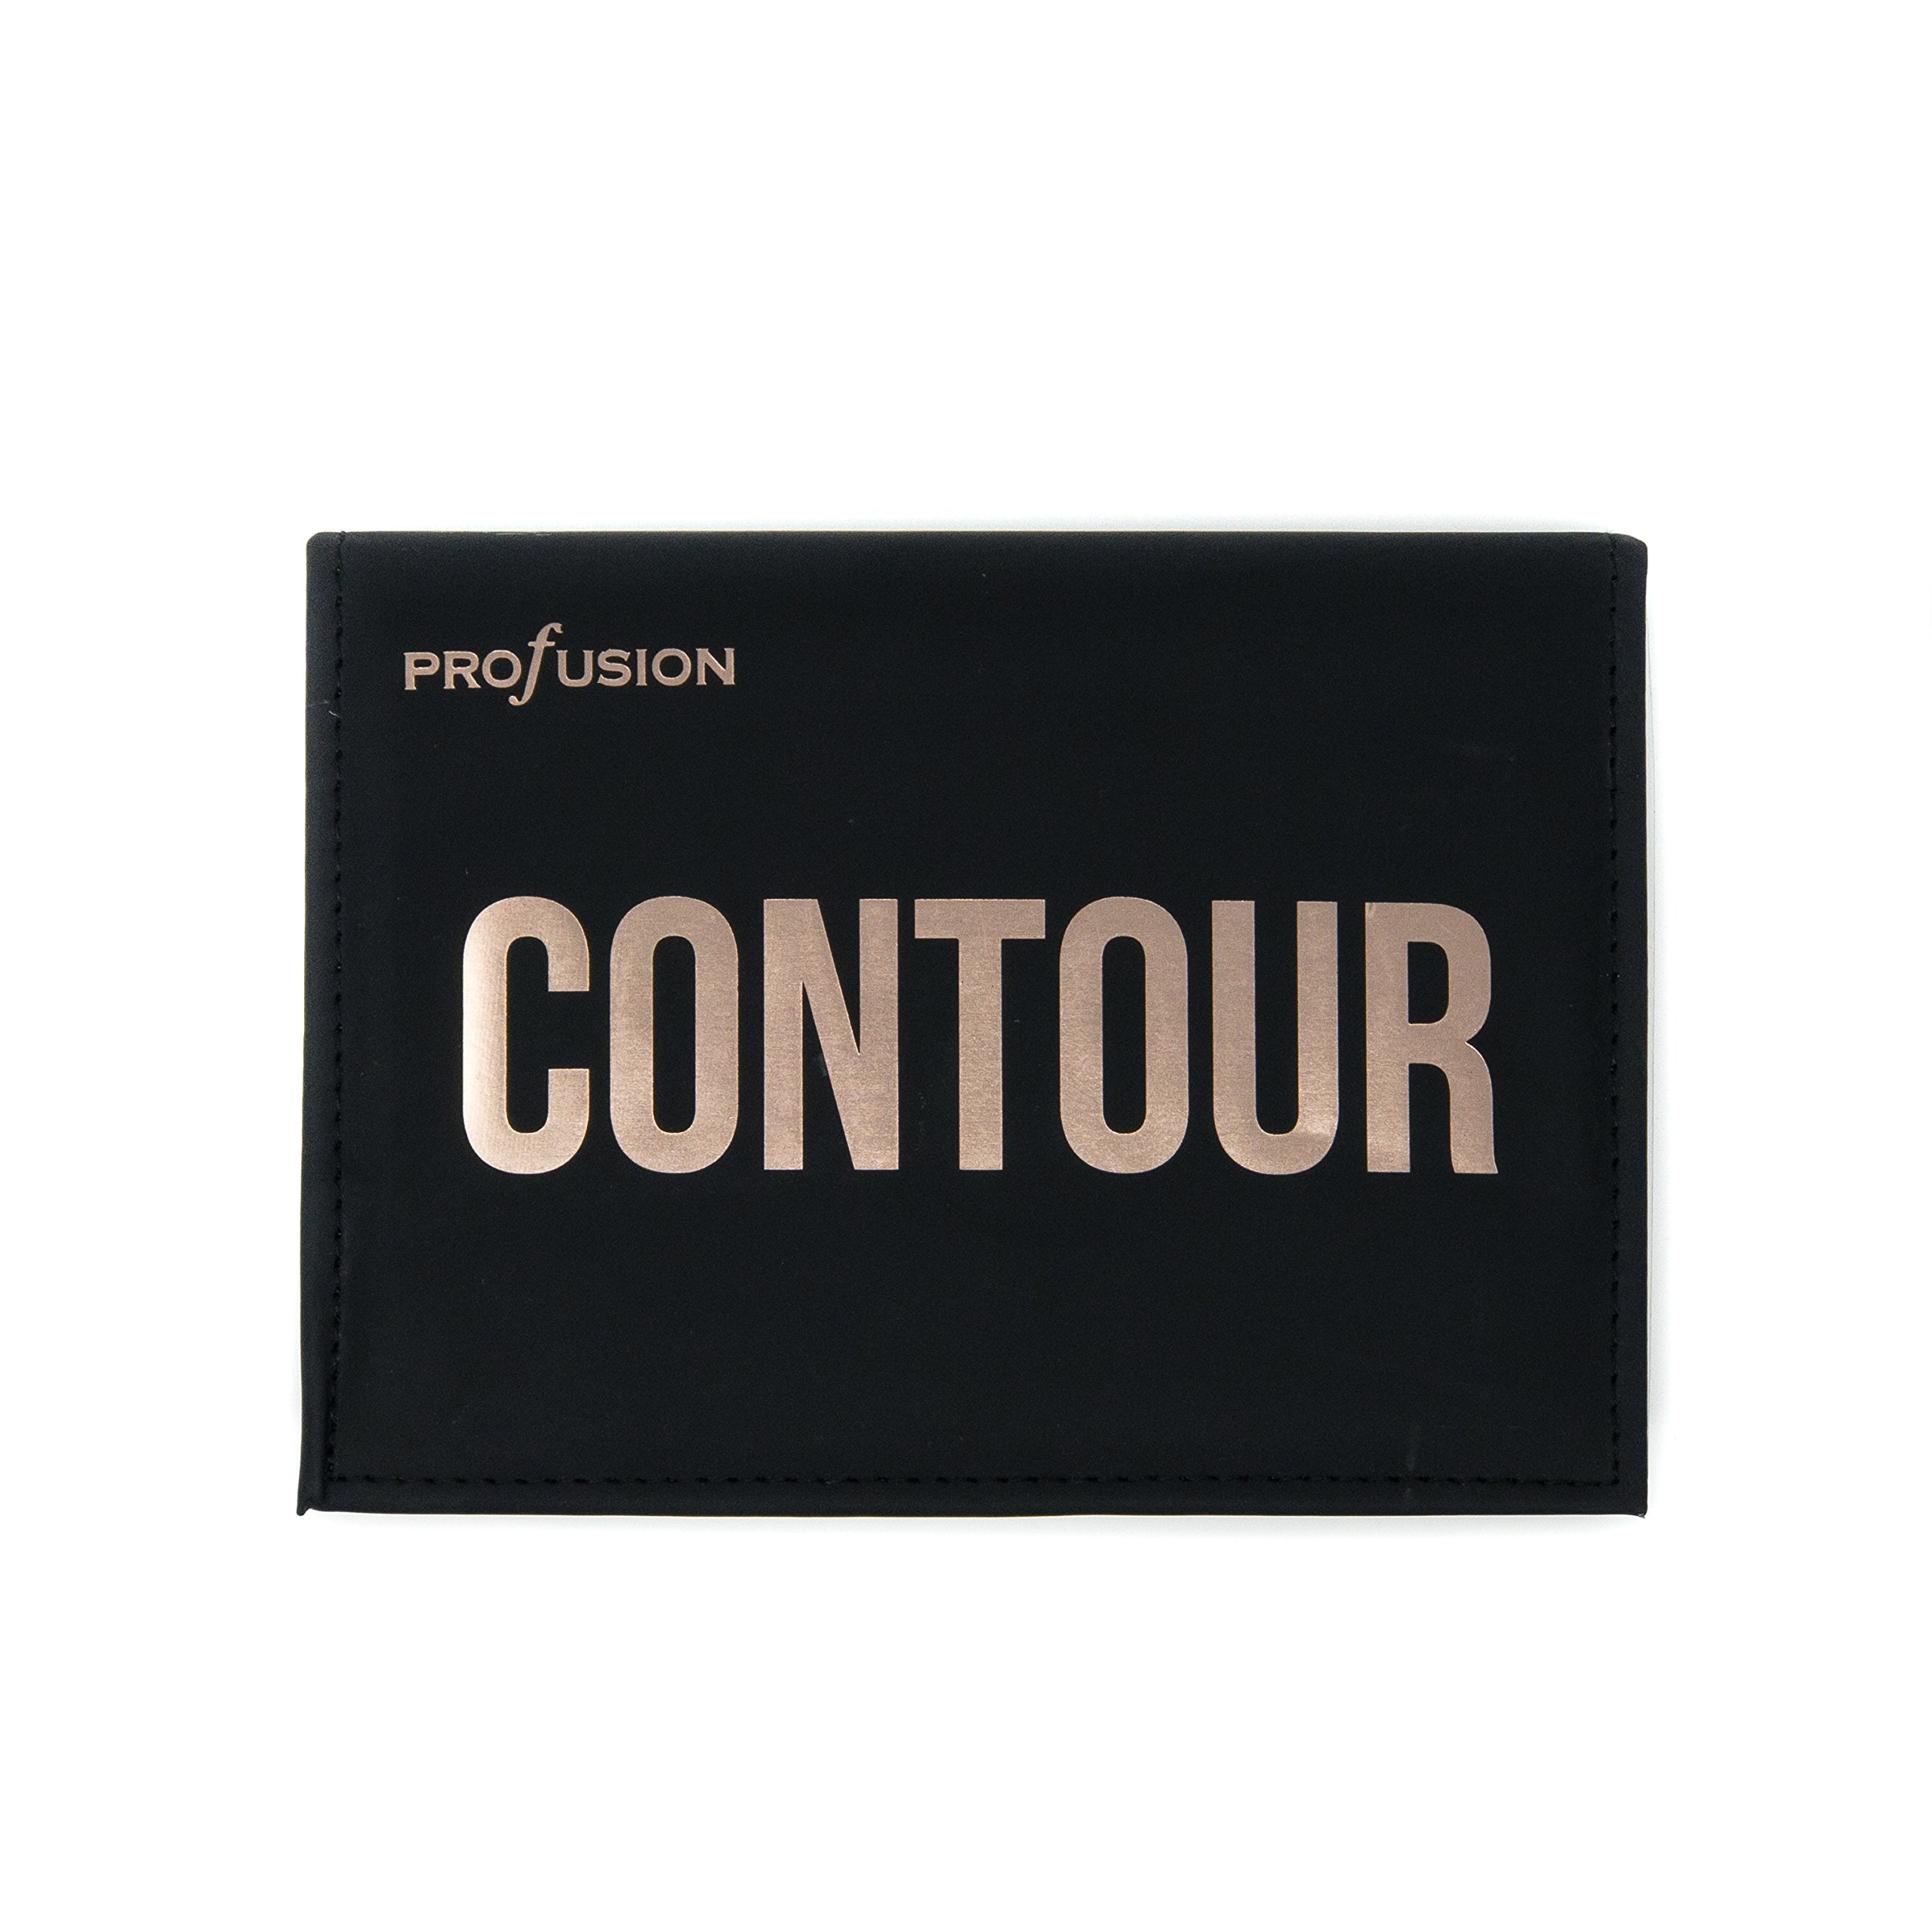 Profusion Cosmetics - Contour - Professional 8 Color Palette - Face Powder Highlighter Bronzer Makeup Kit Brushes Included - Champagne Highlight Nutmeg Ivory Peach Pale Gala Moonstone Java Ebony by Profusion Cosmetics (Image #8)